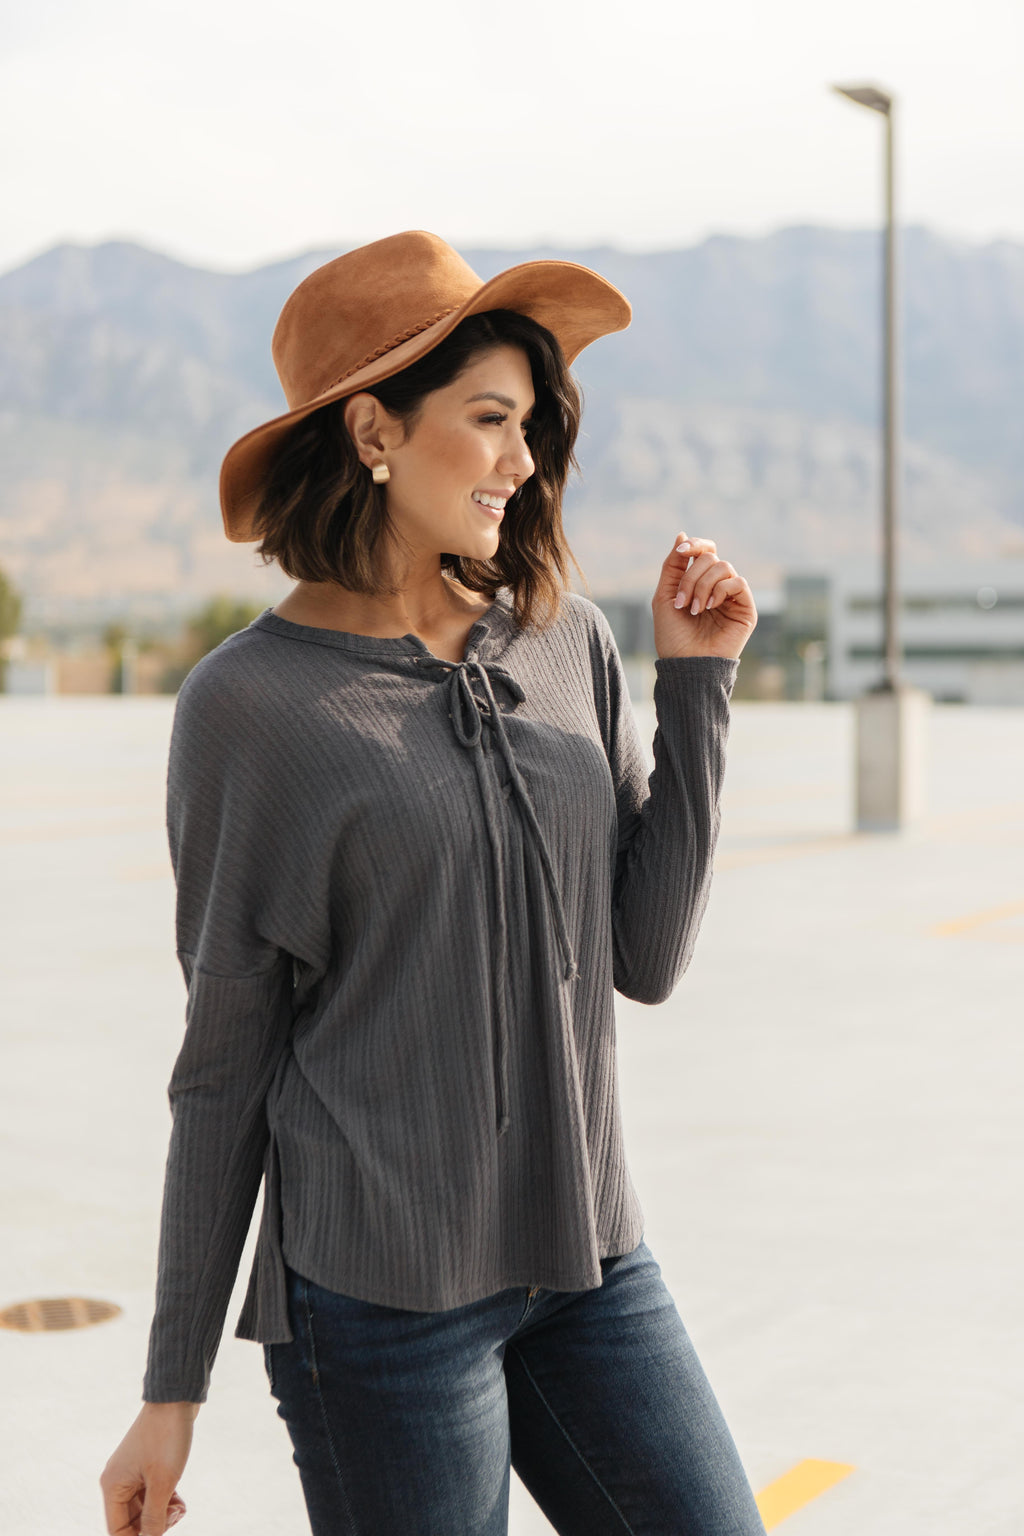 Straight Laced Ribbed Top In Charcoal-1XL, 2XL, 3XL, 9-24-2020, Group B, Group C, Large, Medium, Plus, Small, Tops, XL, XS-Womens Artisan USA American Made Clothing Accessories